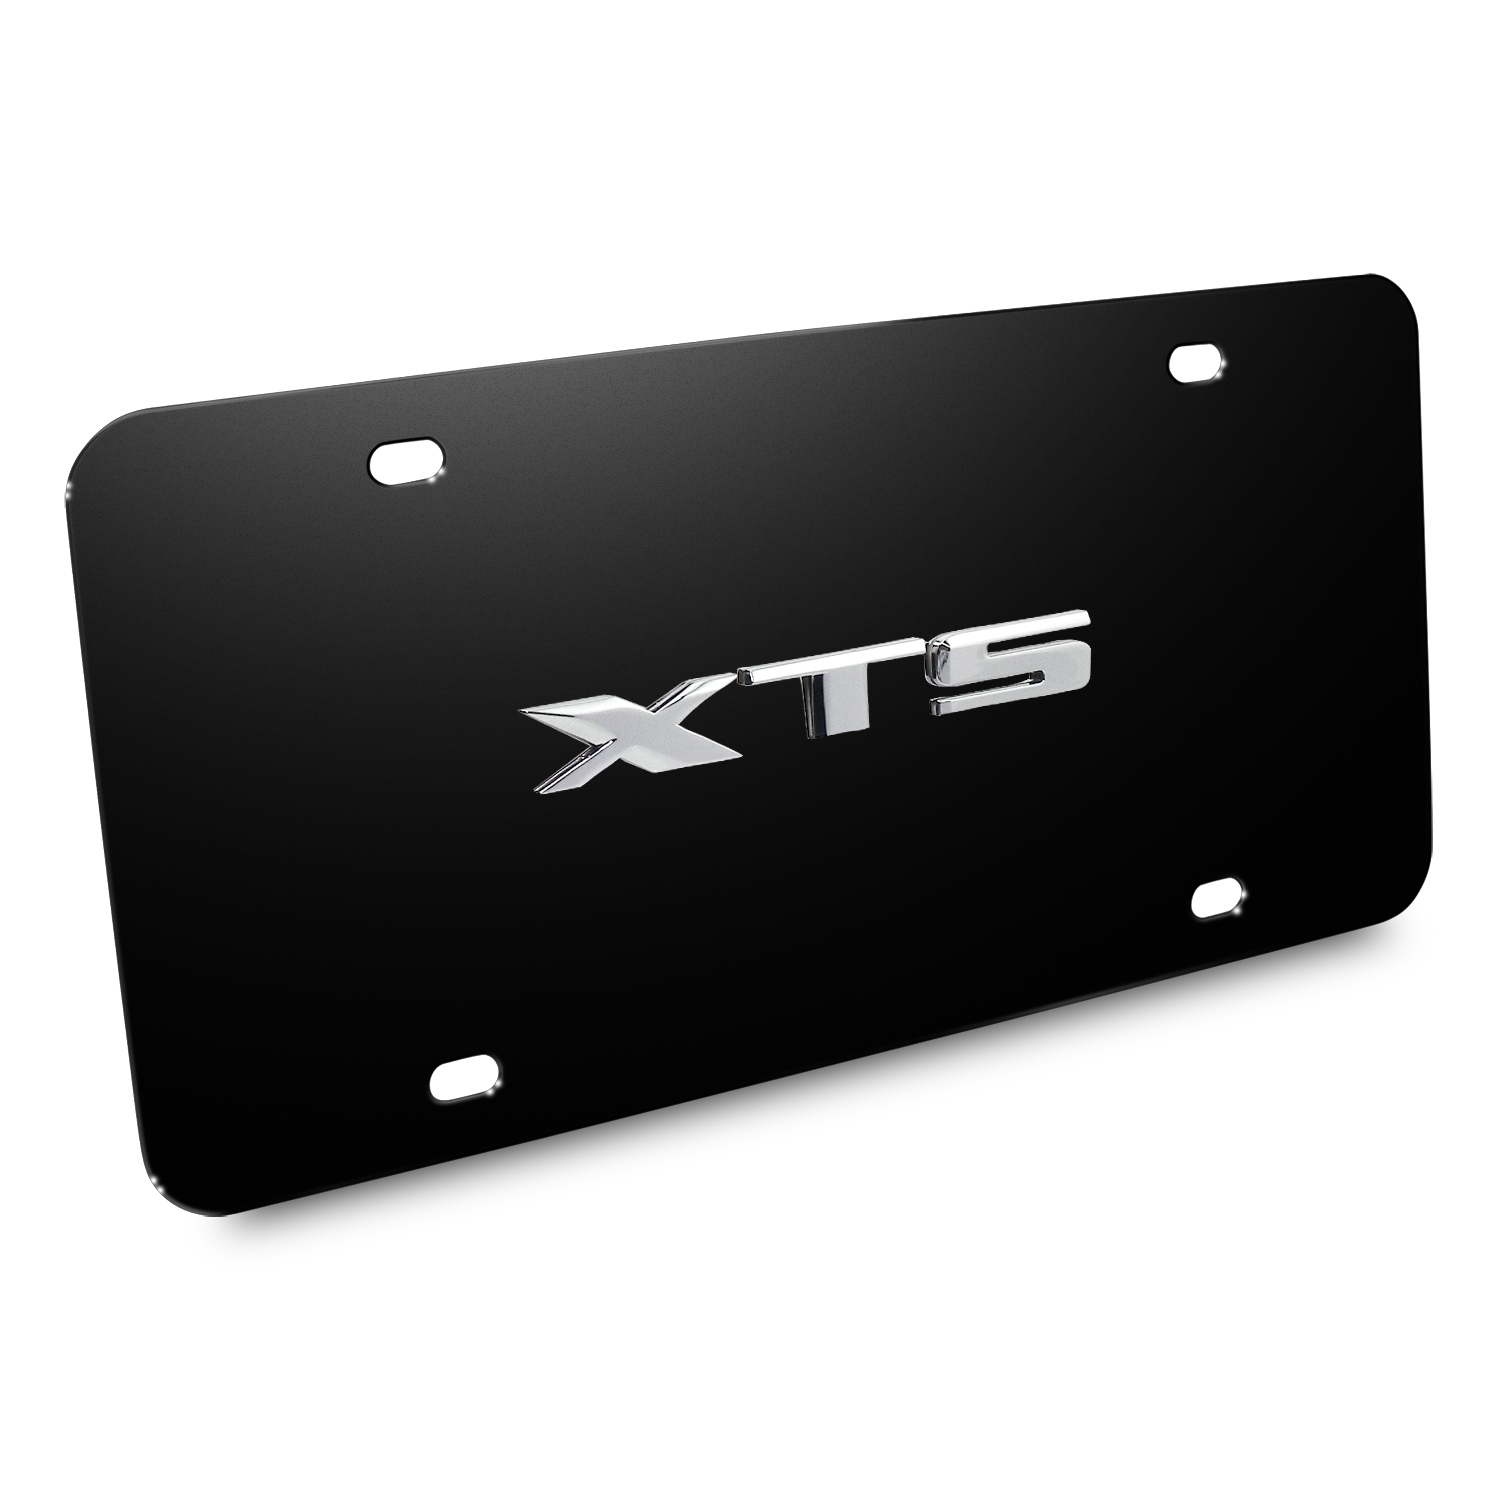 Cadillac XTS Name 3D Logo Black Stainless Steel License Plate